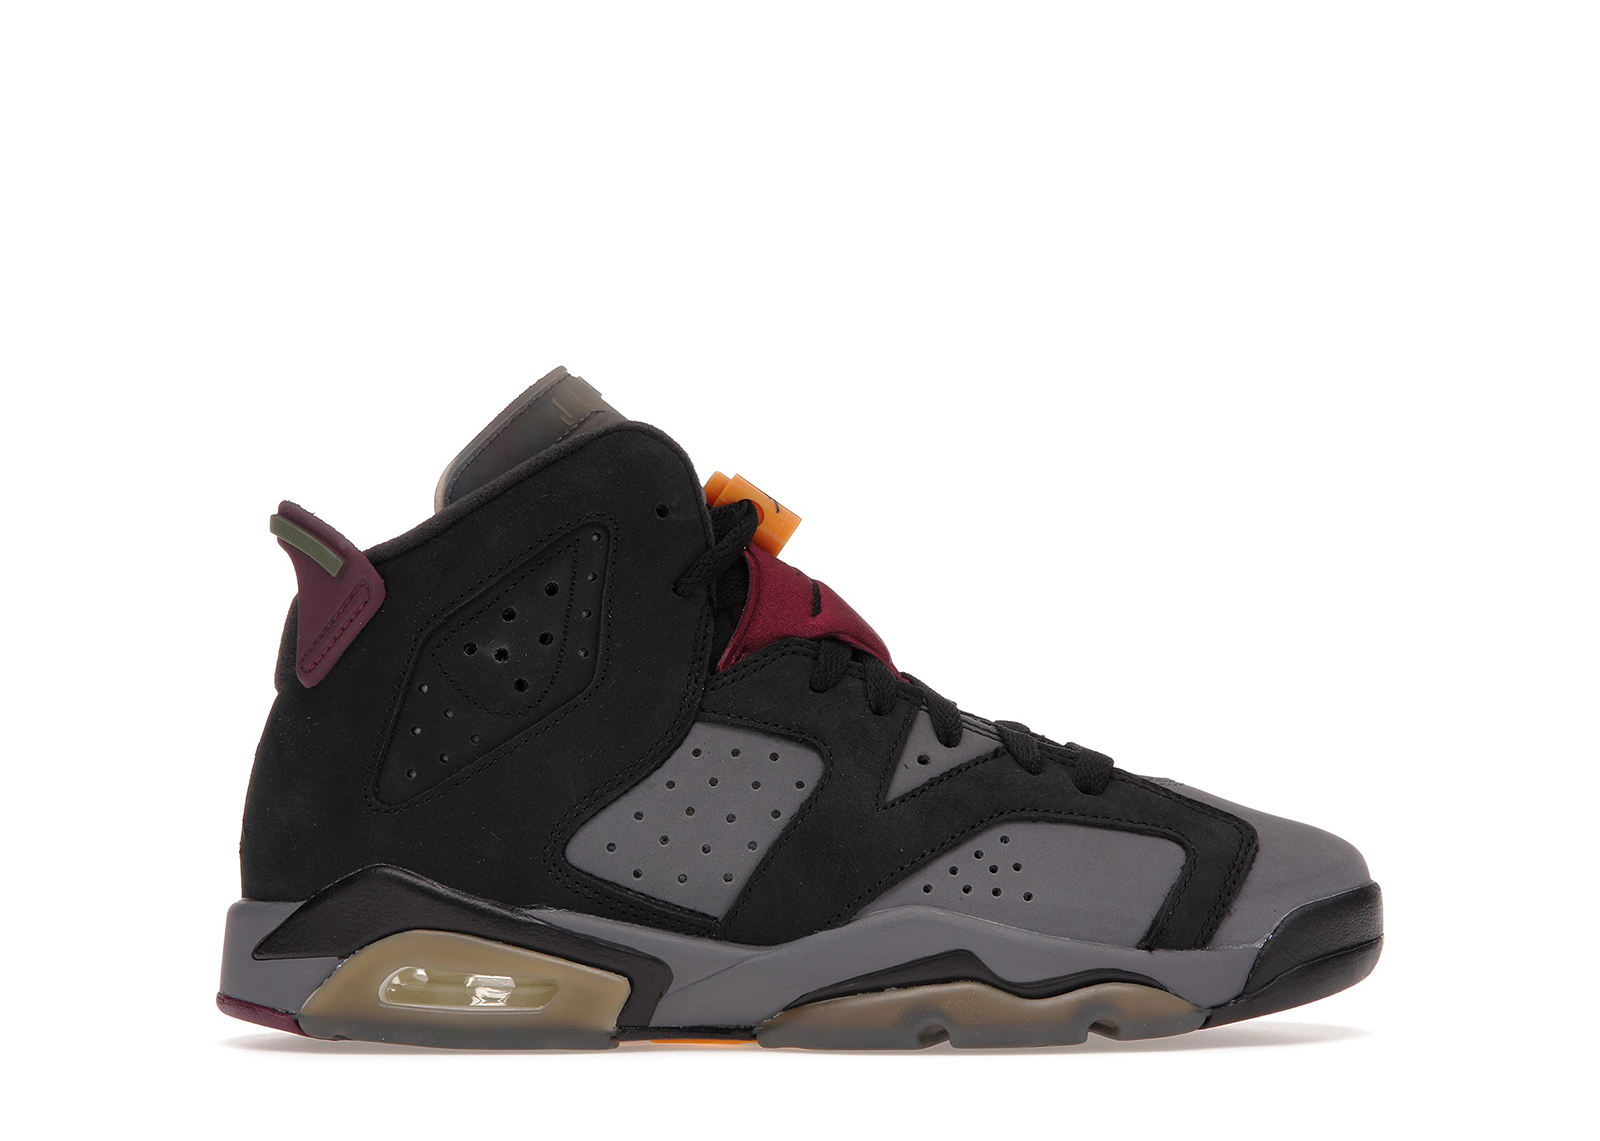 Jordan 6 - All Sizes & Colorways from $50 at StockX